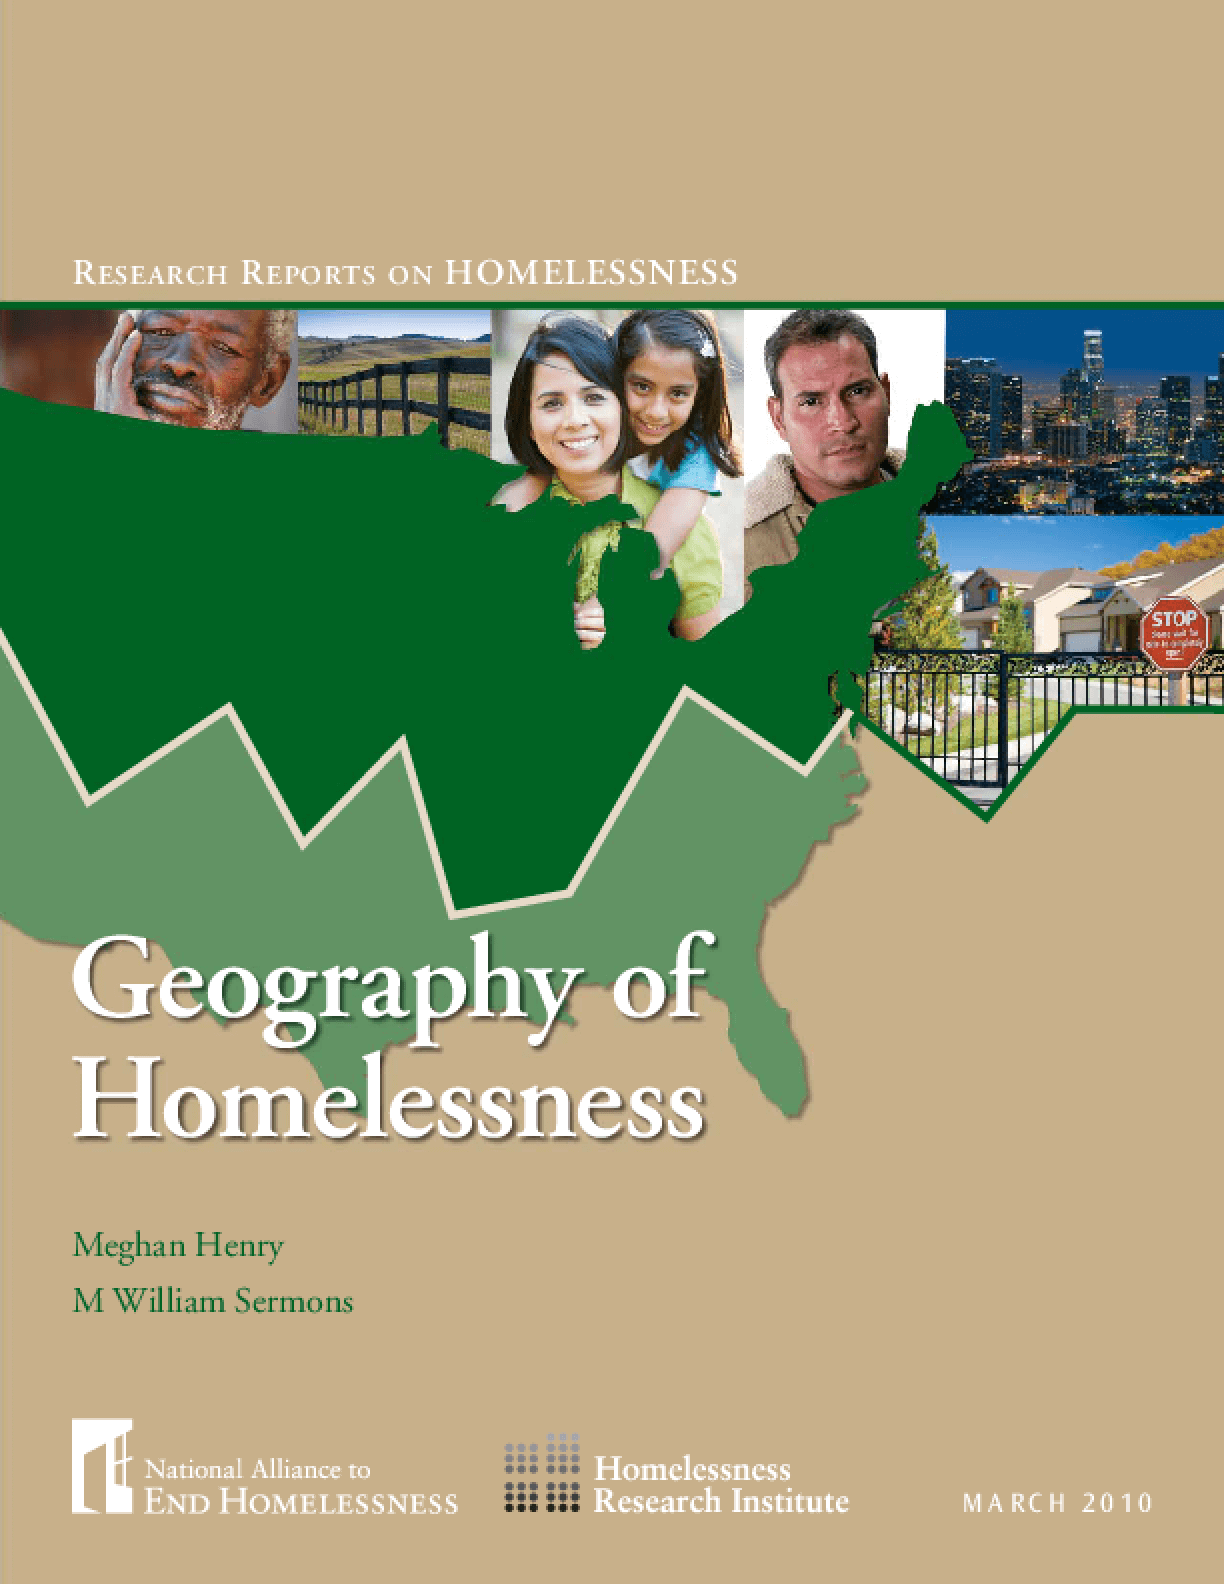 Geography of Homelessness Report